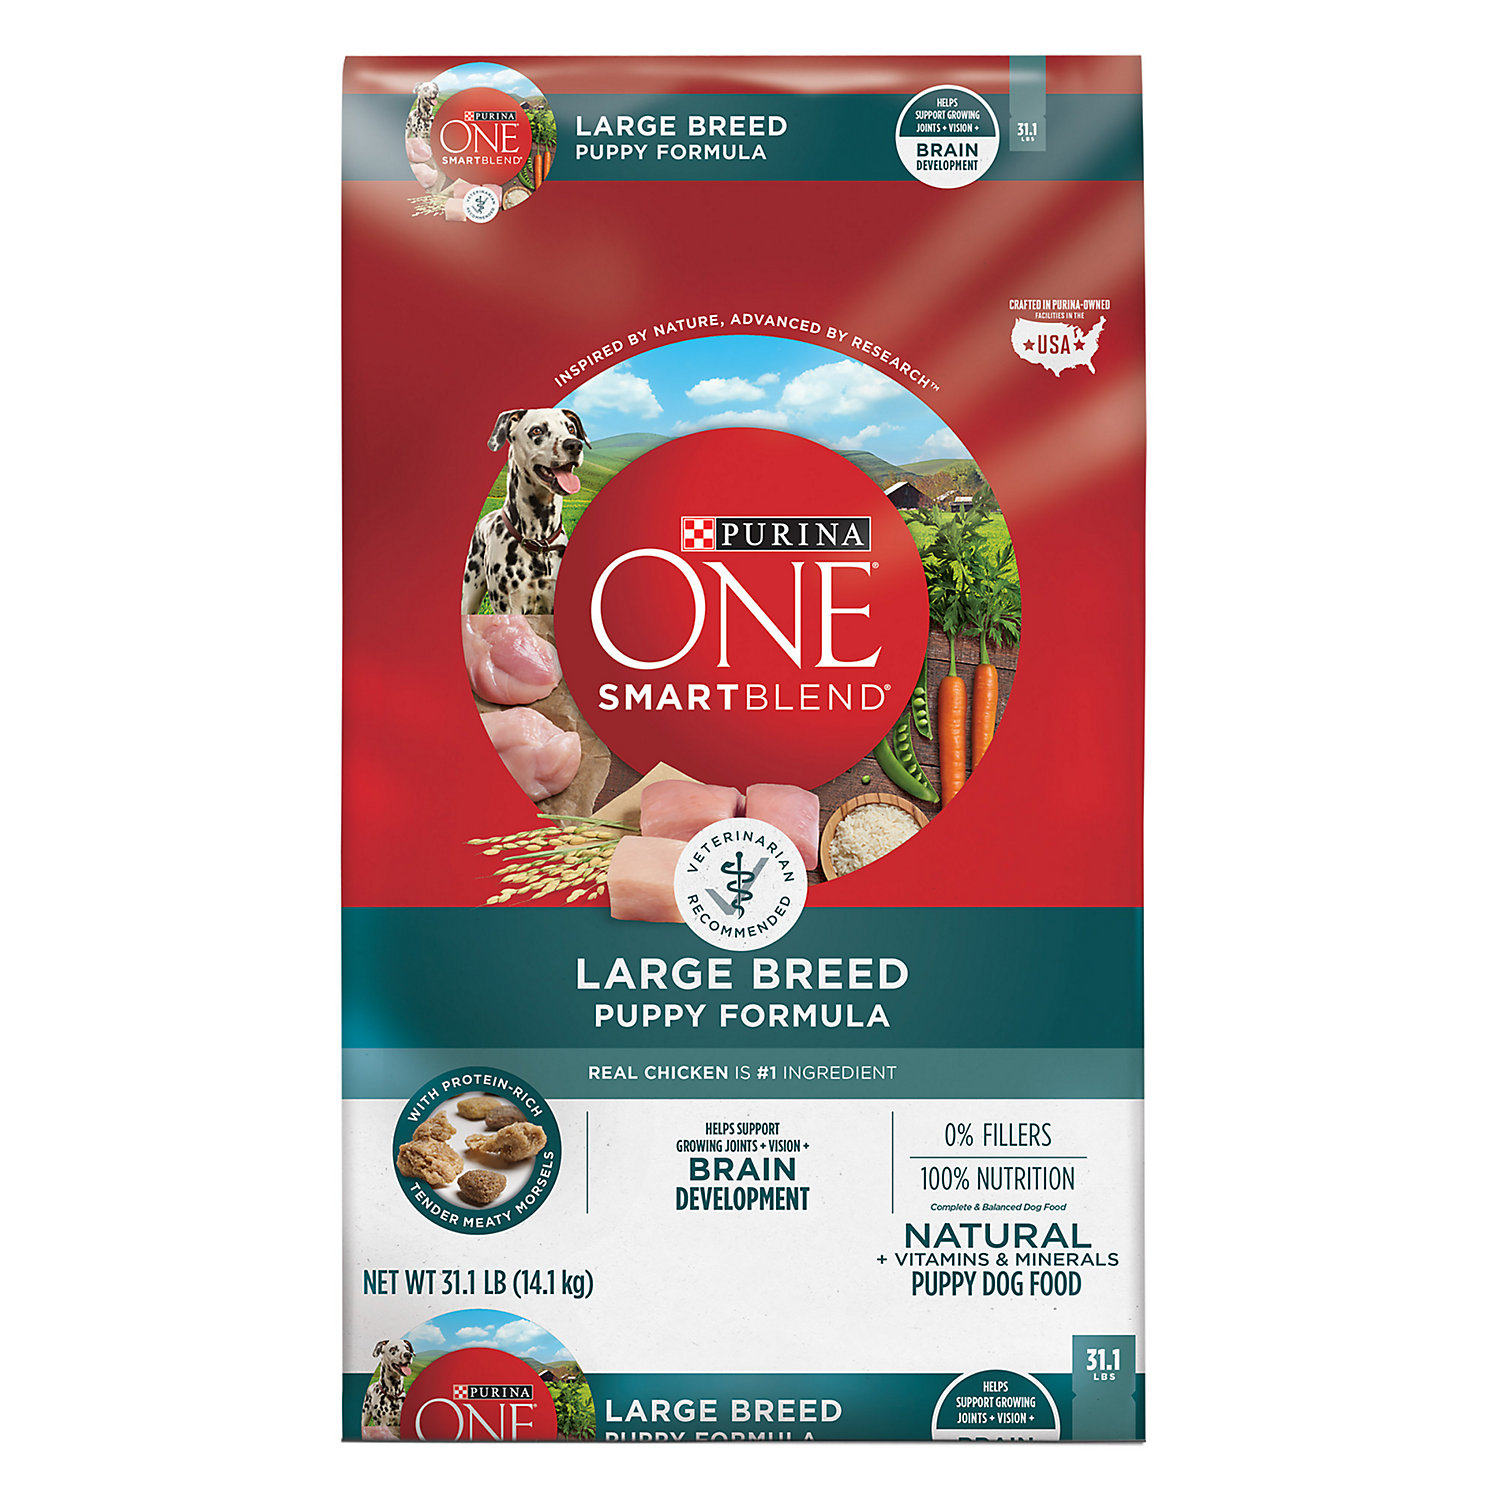 Purina One Large Breed Puppy Formula Dog Food